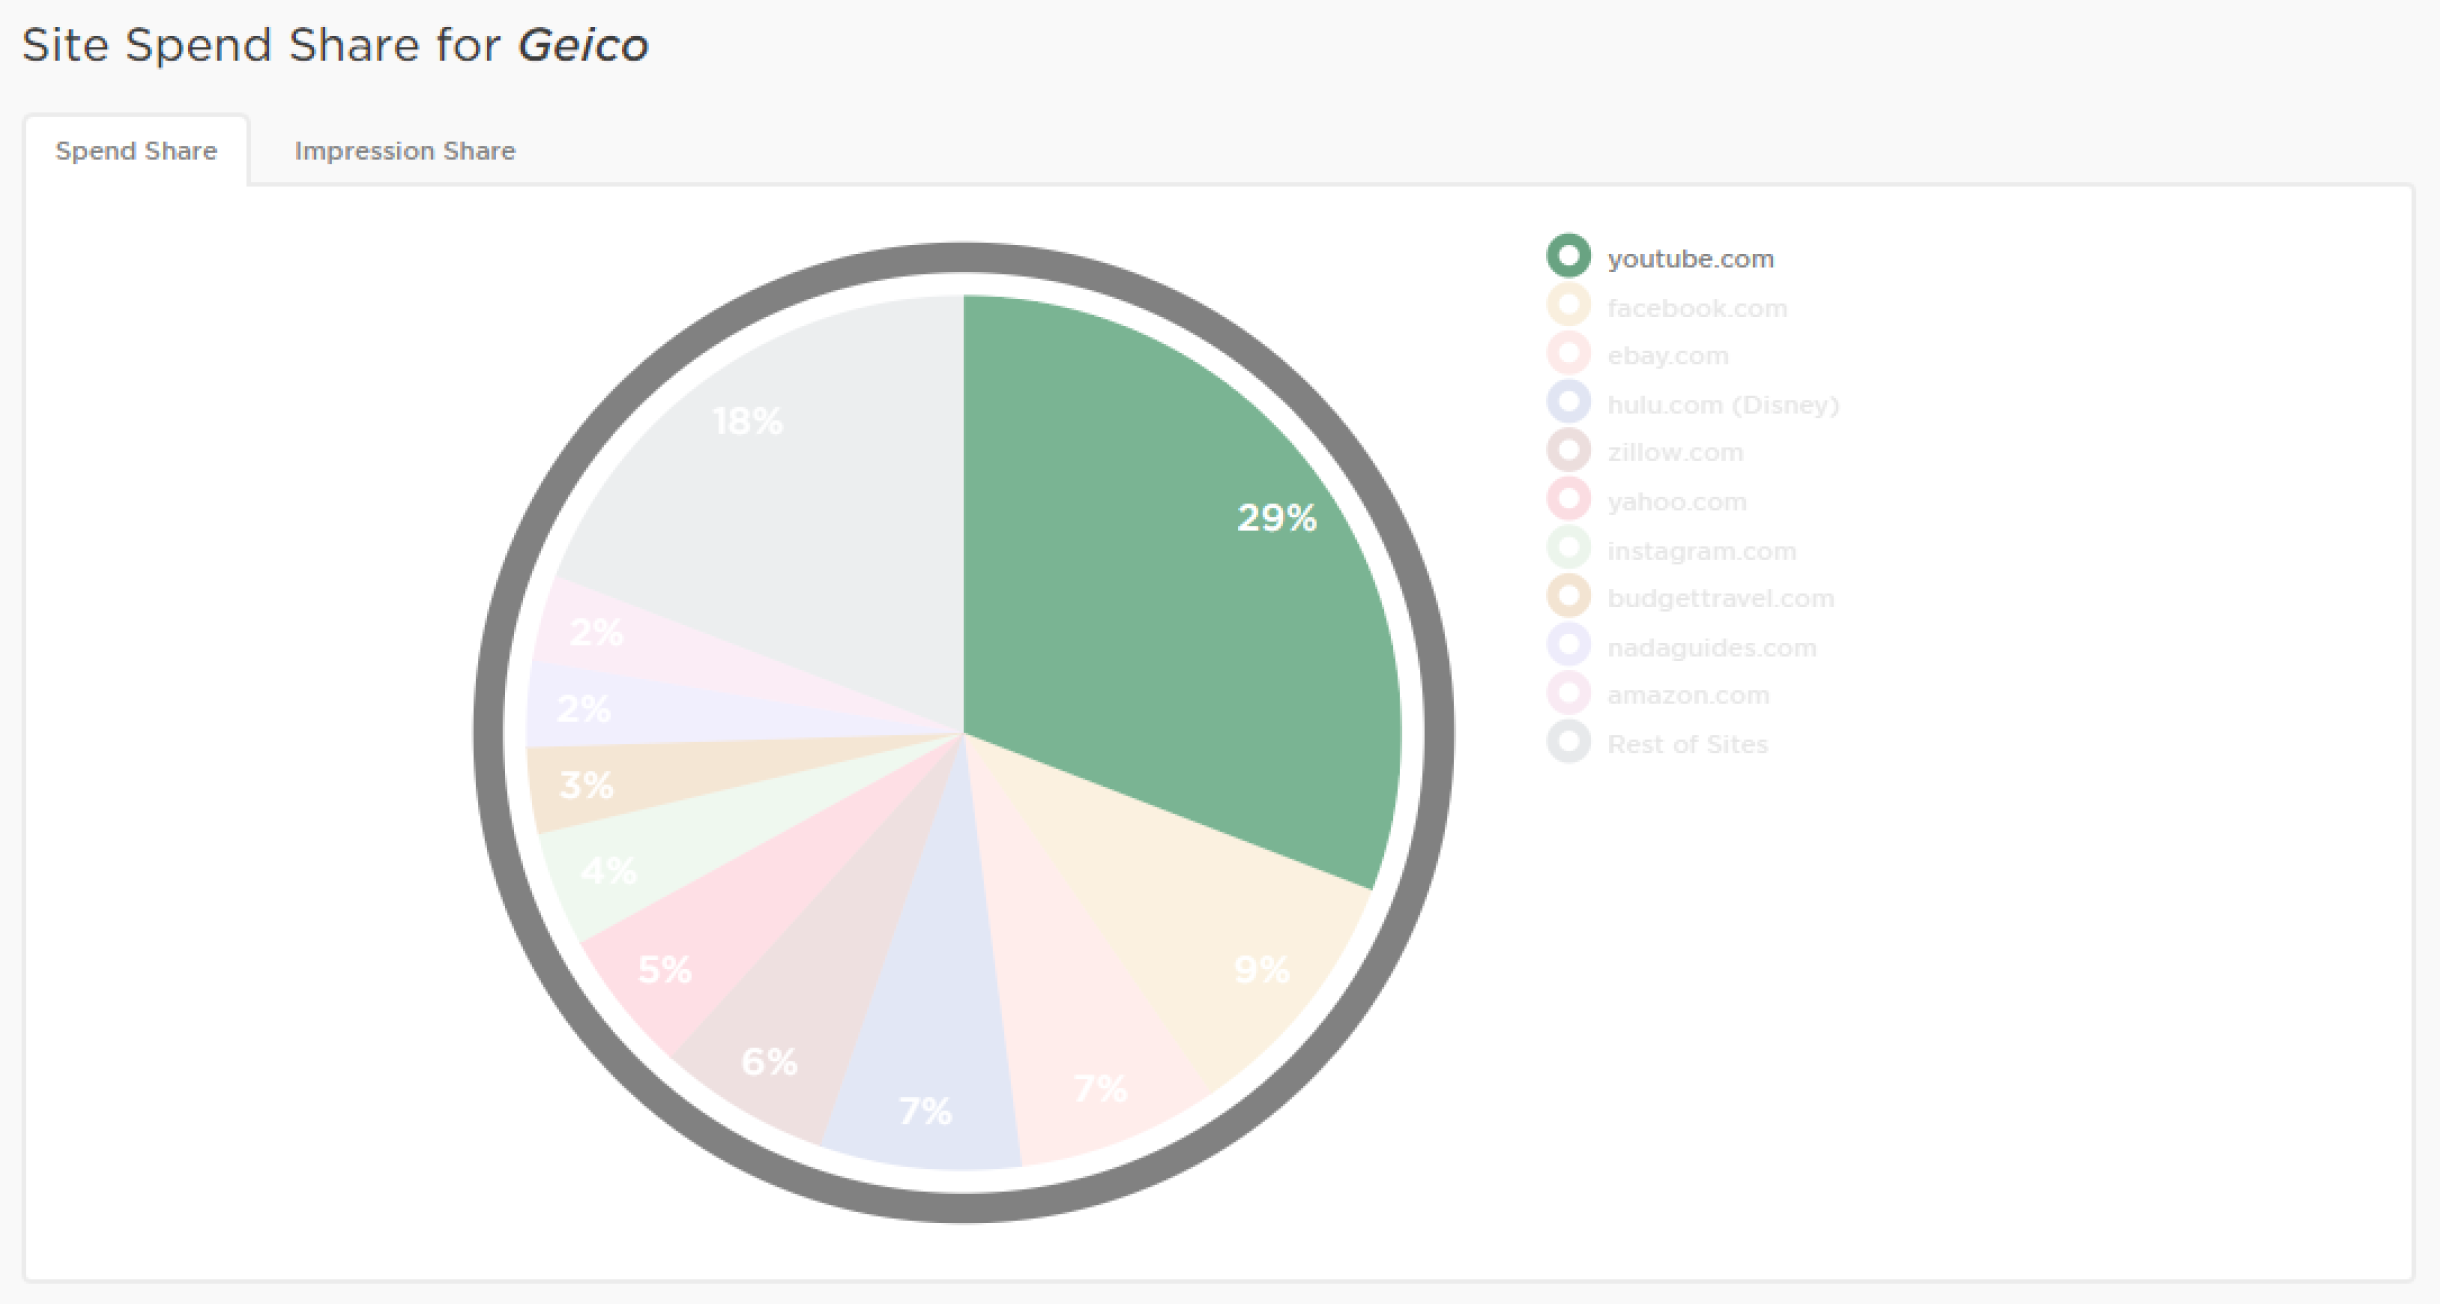 YT combined - share of wallet (1) 1